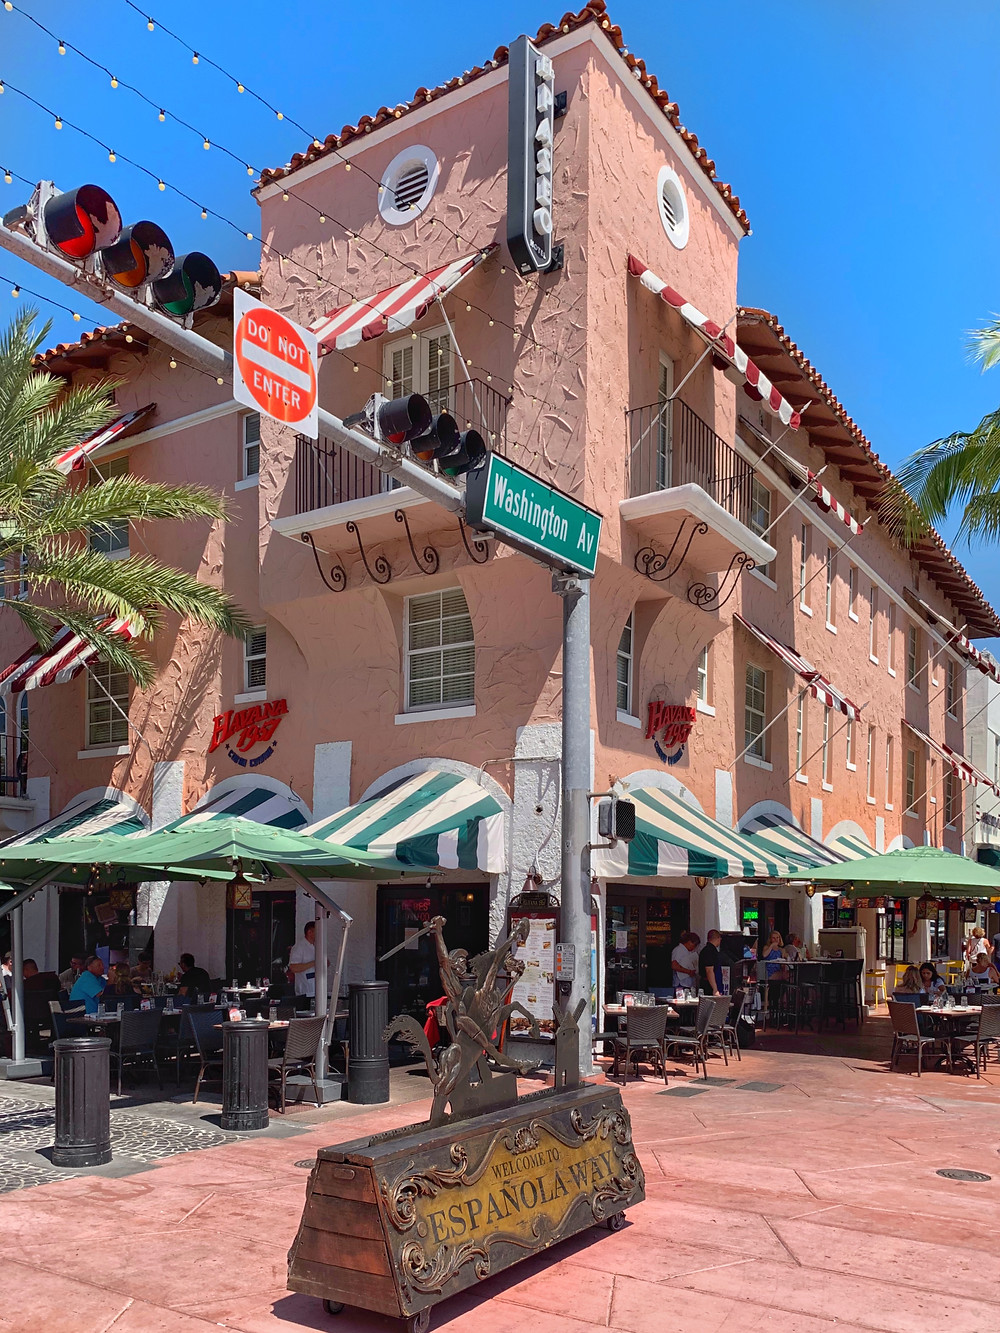 Street with restaurants and hotels in south beach miami beach fl